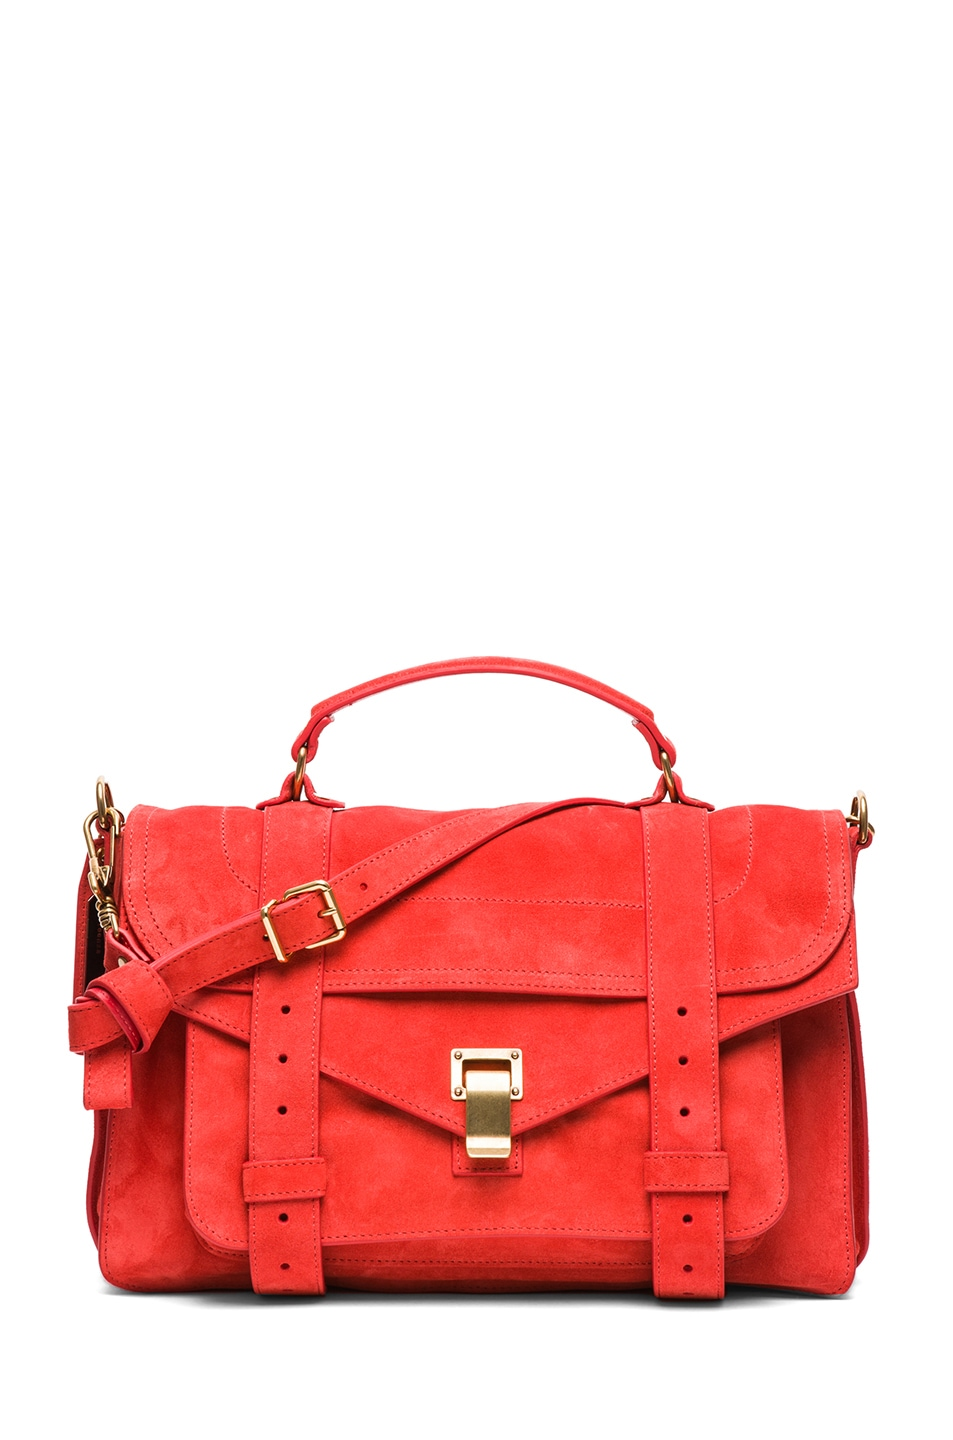 Image 1 of Proenza Schouler Medium PS1 Suede Satchel in Poppy